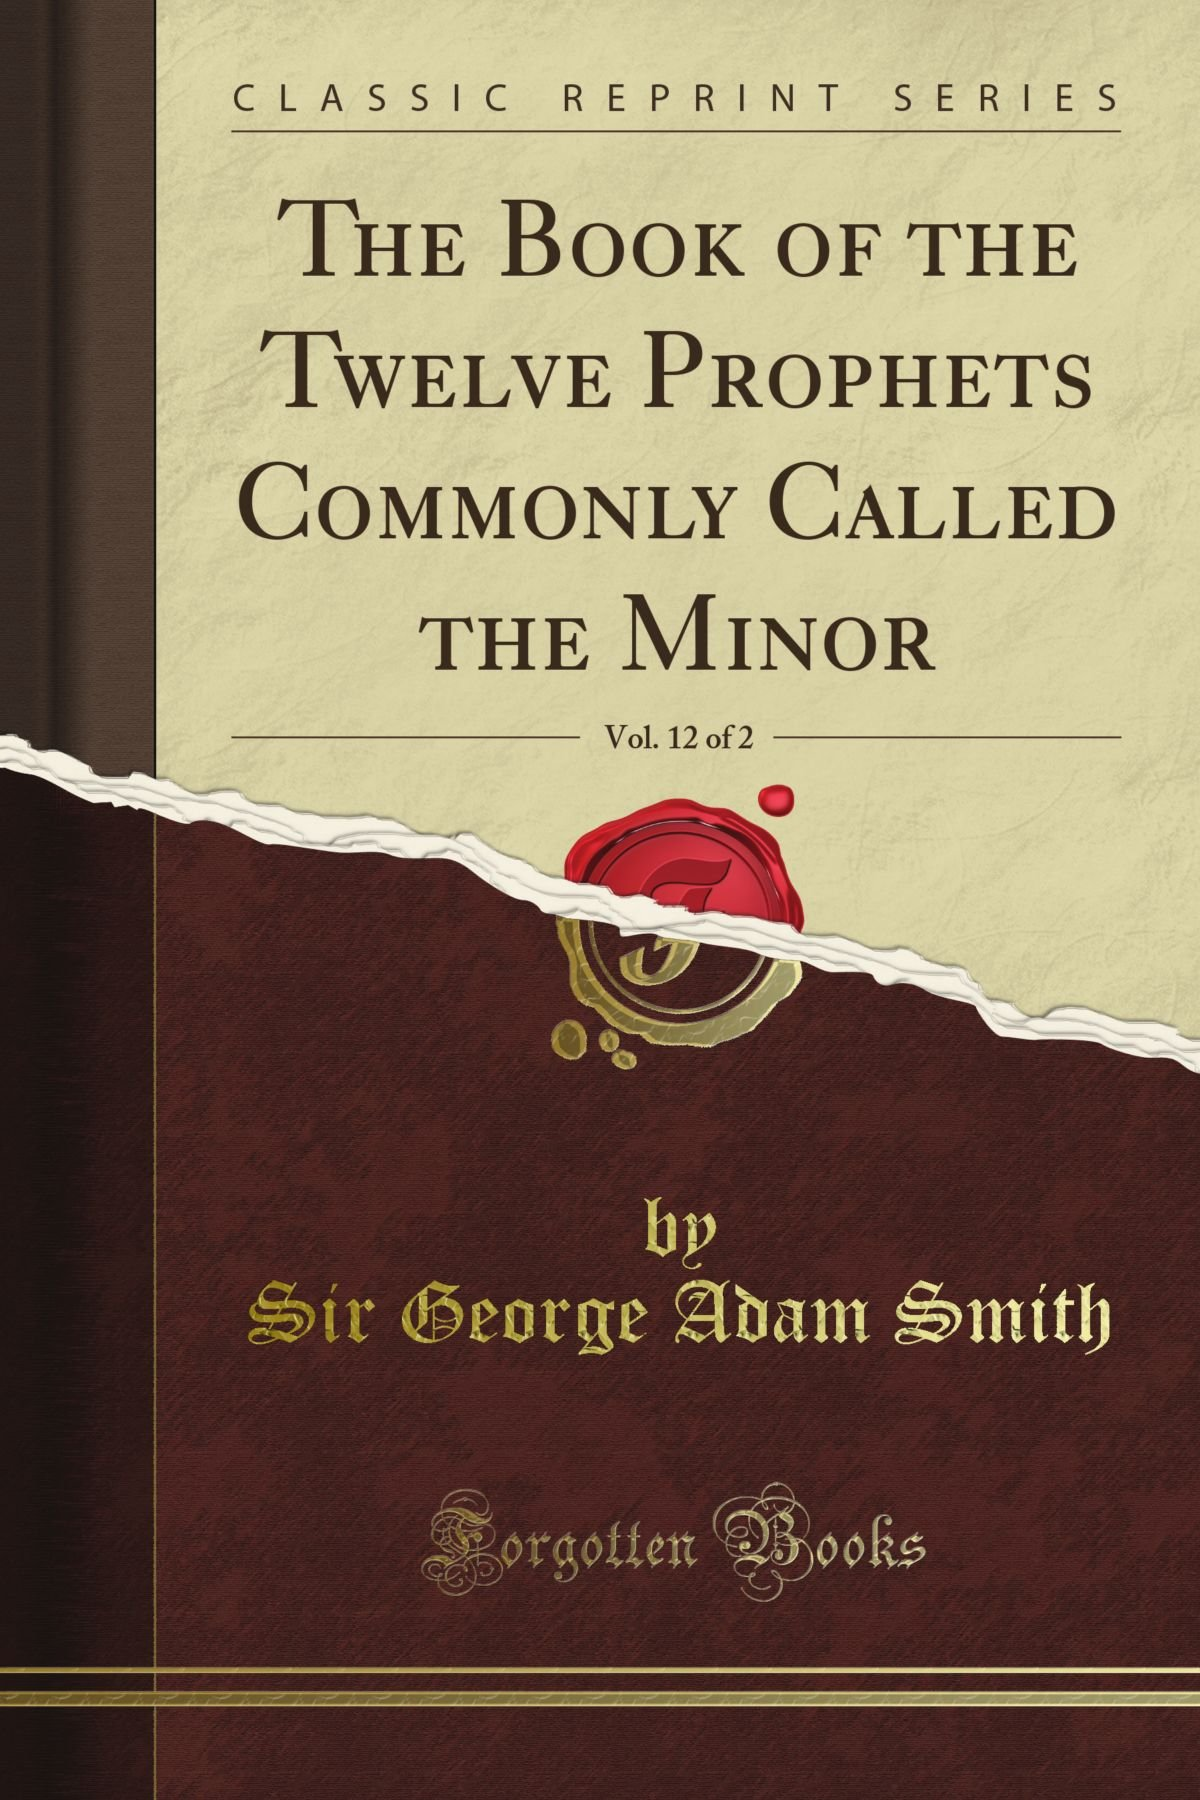 Read Online The Book of the Twelve Prophets Commonly Called the Minor, Vol. 12 of 2 (Classic Reprint) PDF